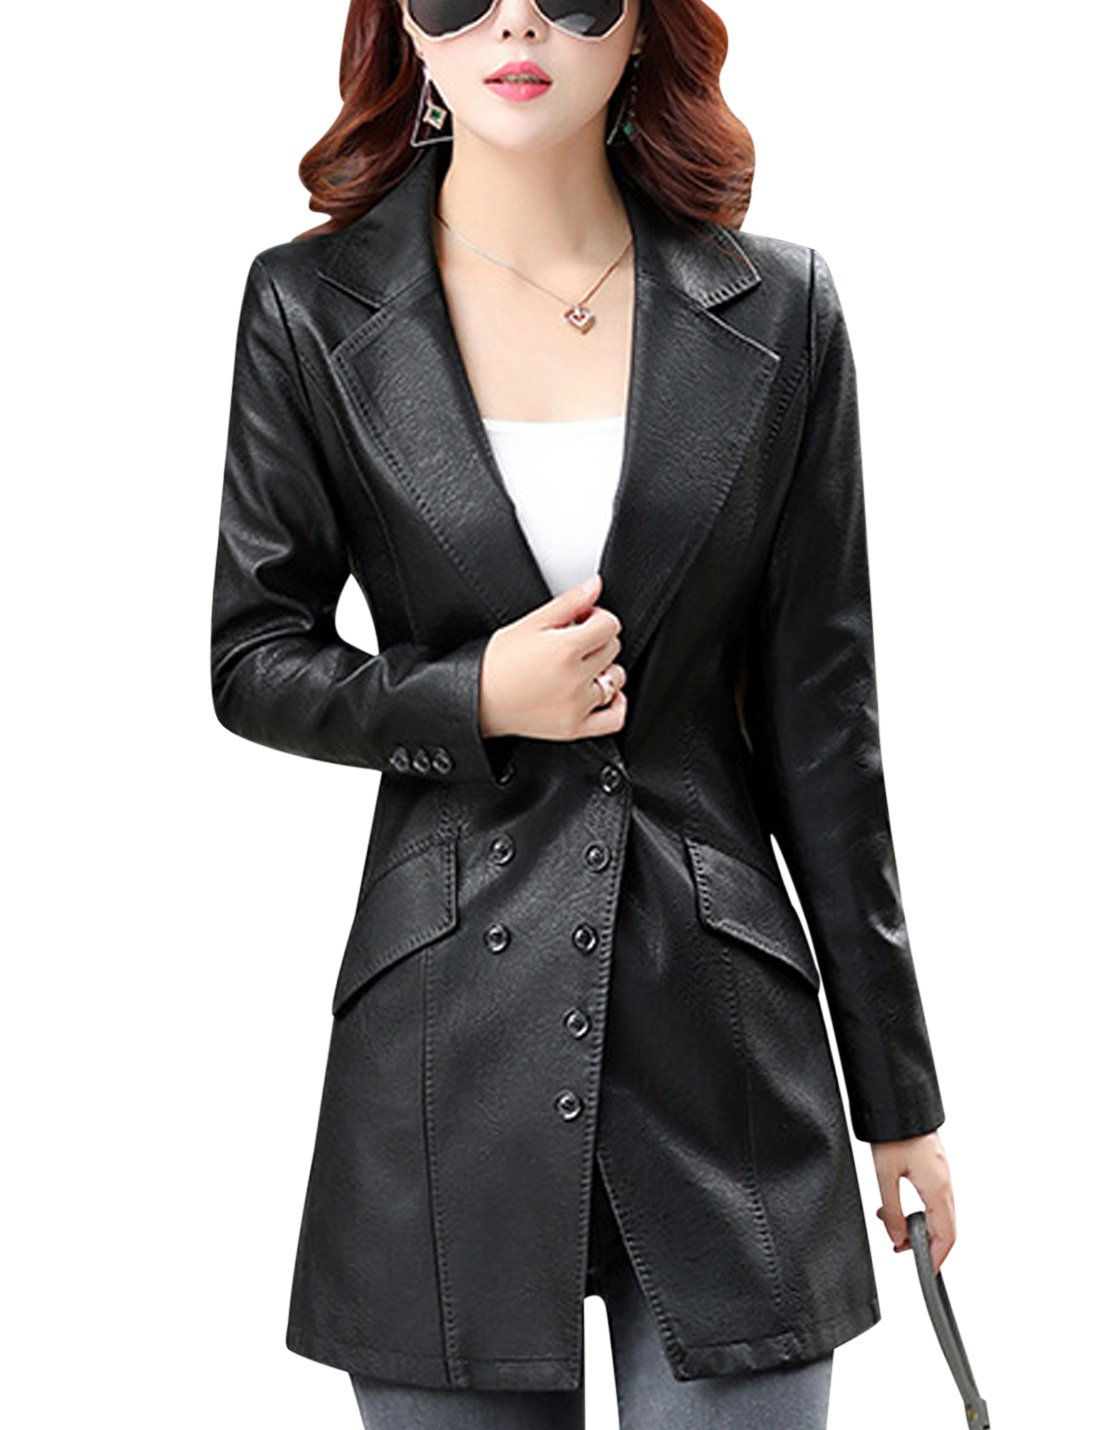 Tanming Women's Button Front Faux Leather Blazer Coat Jacket (X-Small, Black) by Tanming